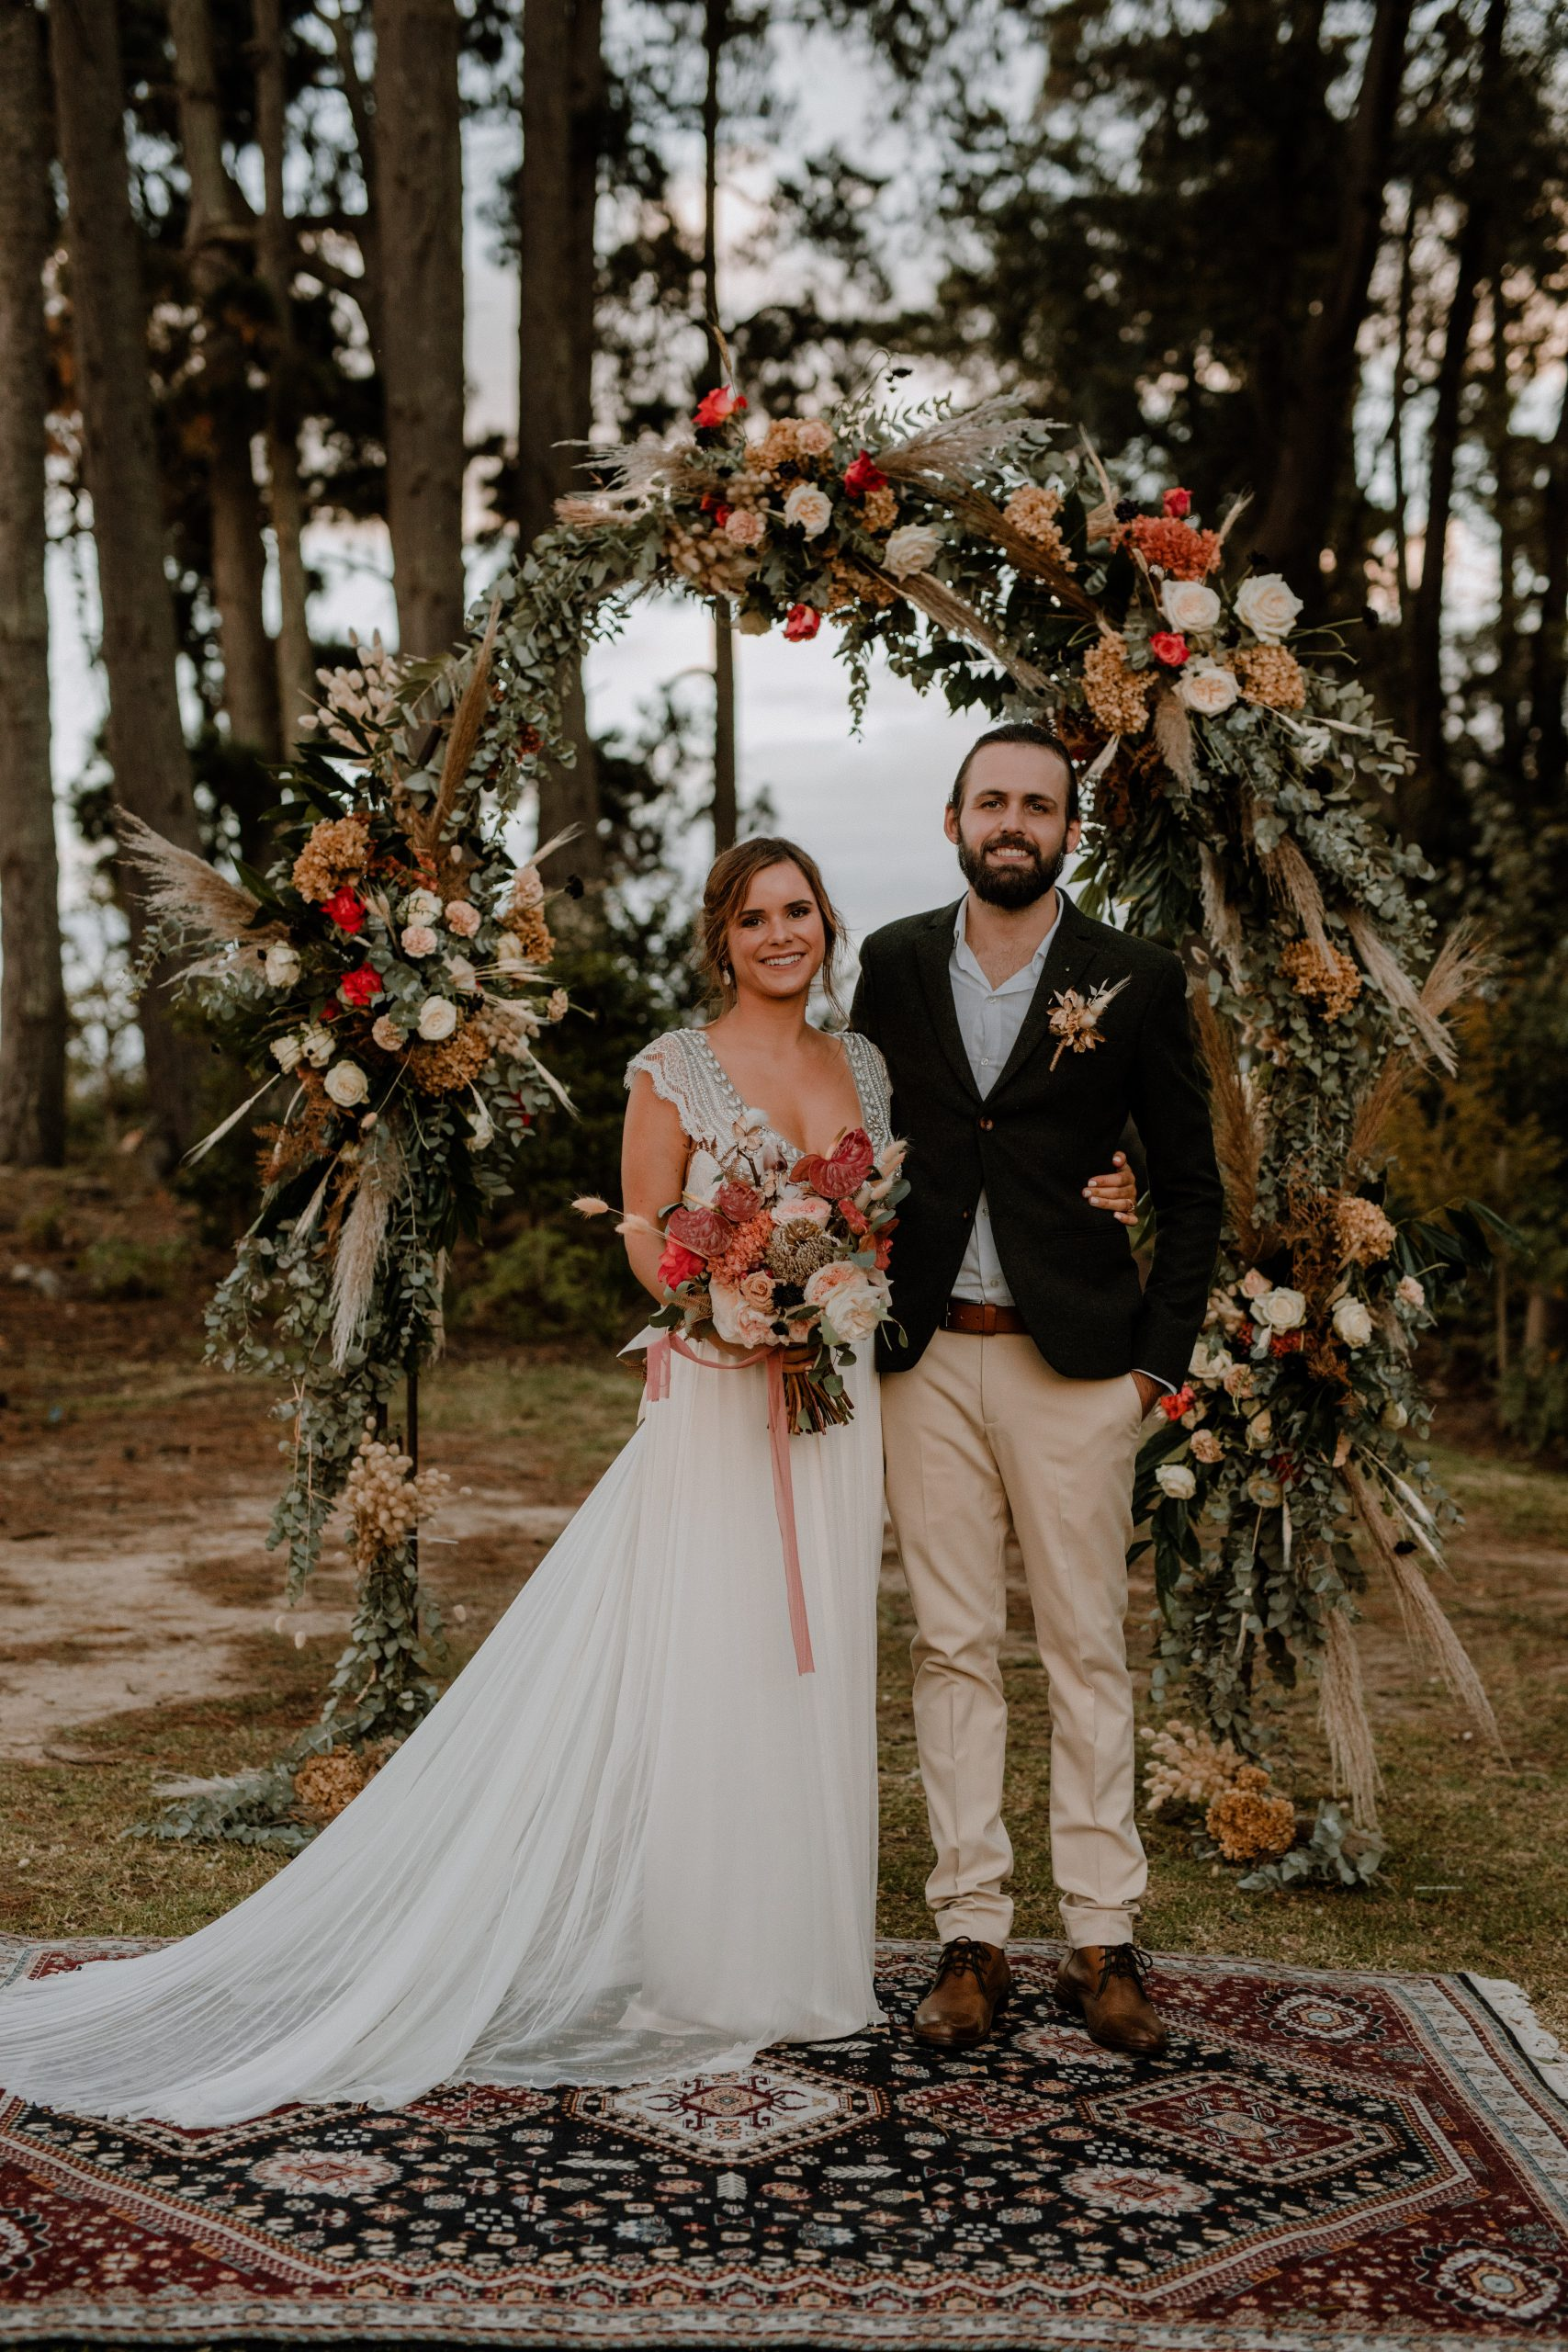 Wedding Arch  - (Flowers & Setup Only)